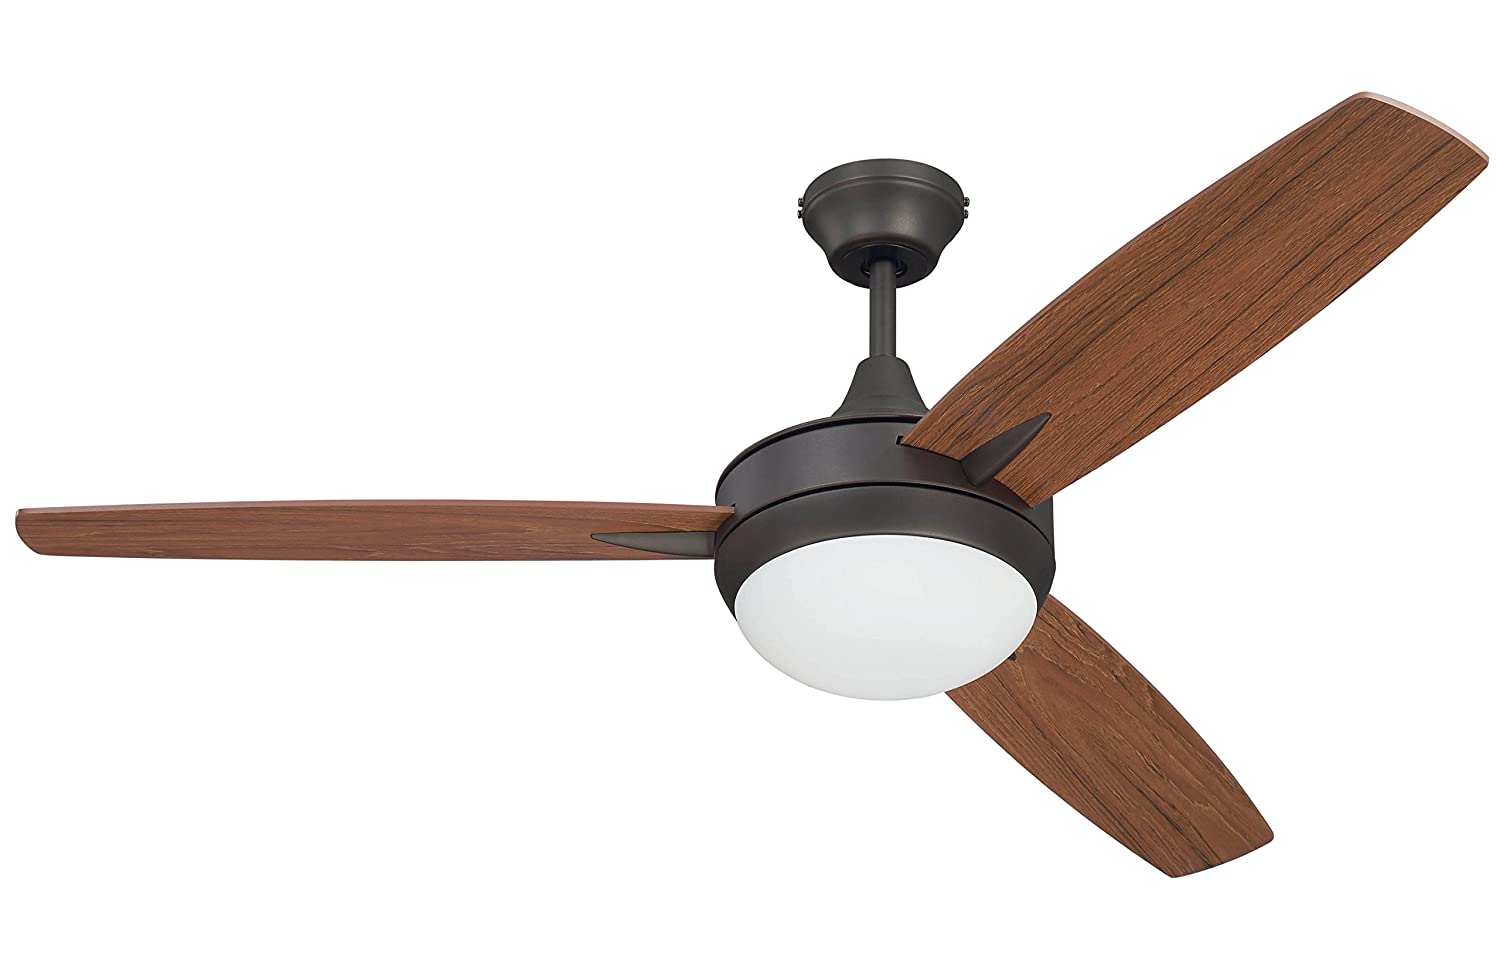 48 Ceiling Fan With Light